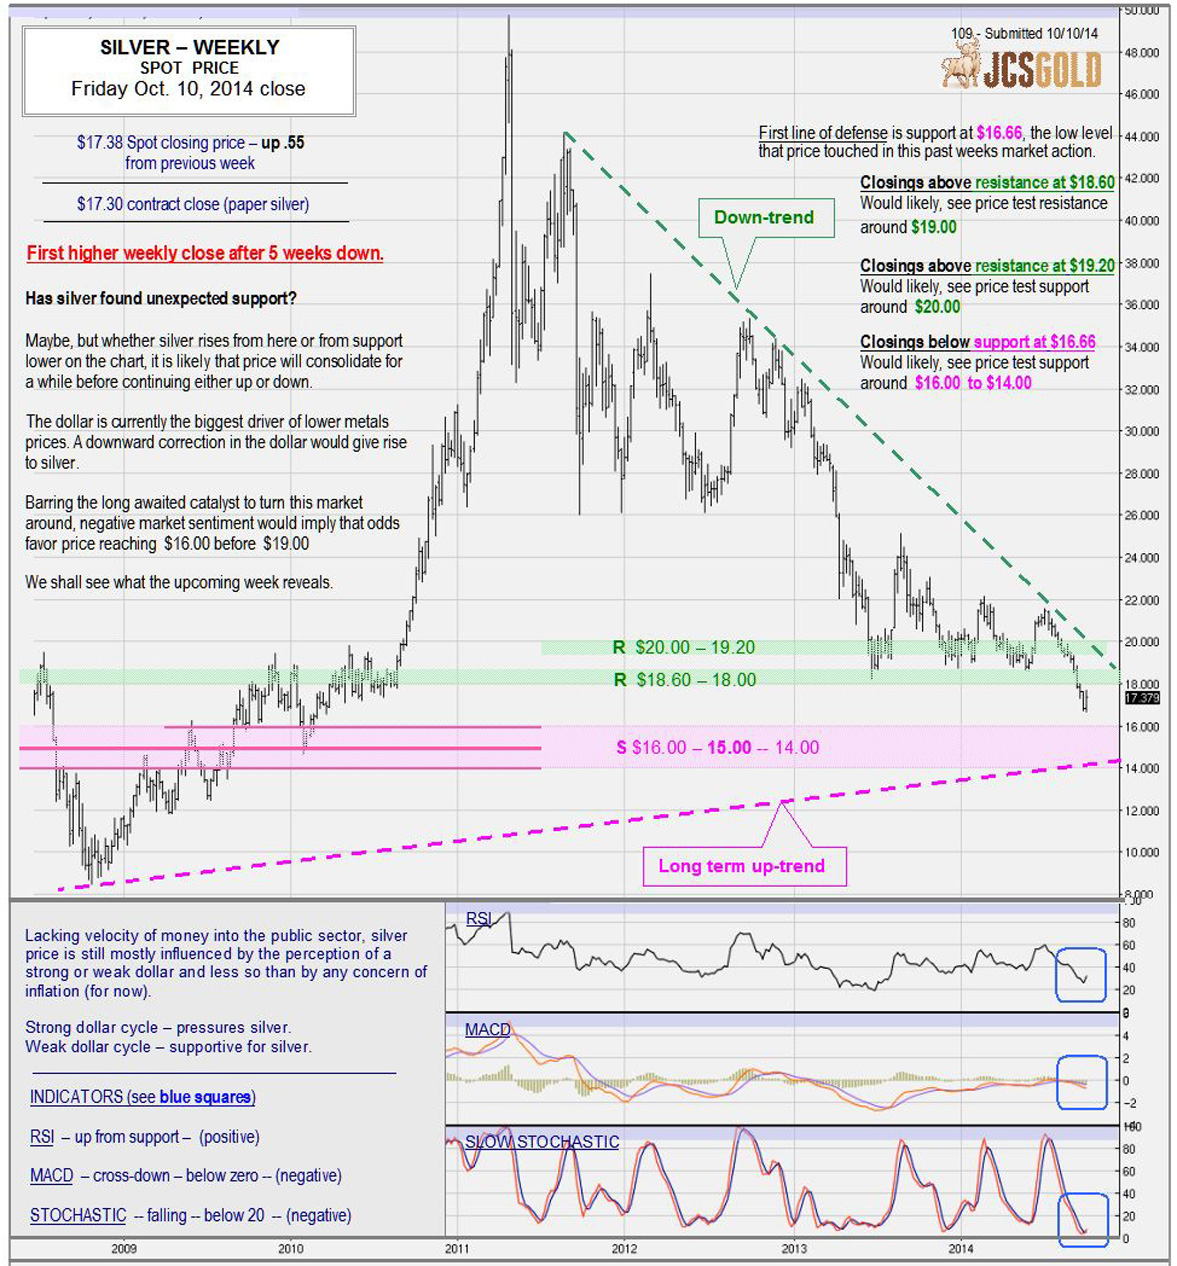 Oct. 10, 2014 chart & commentary